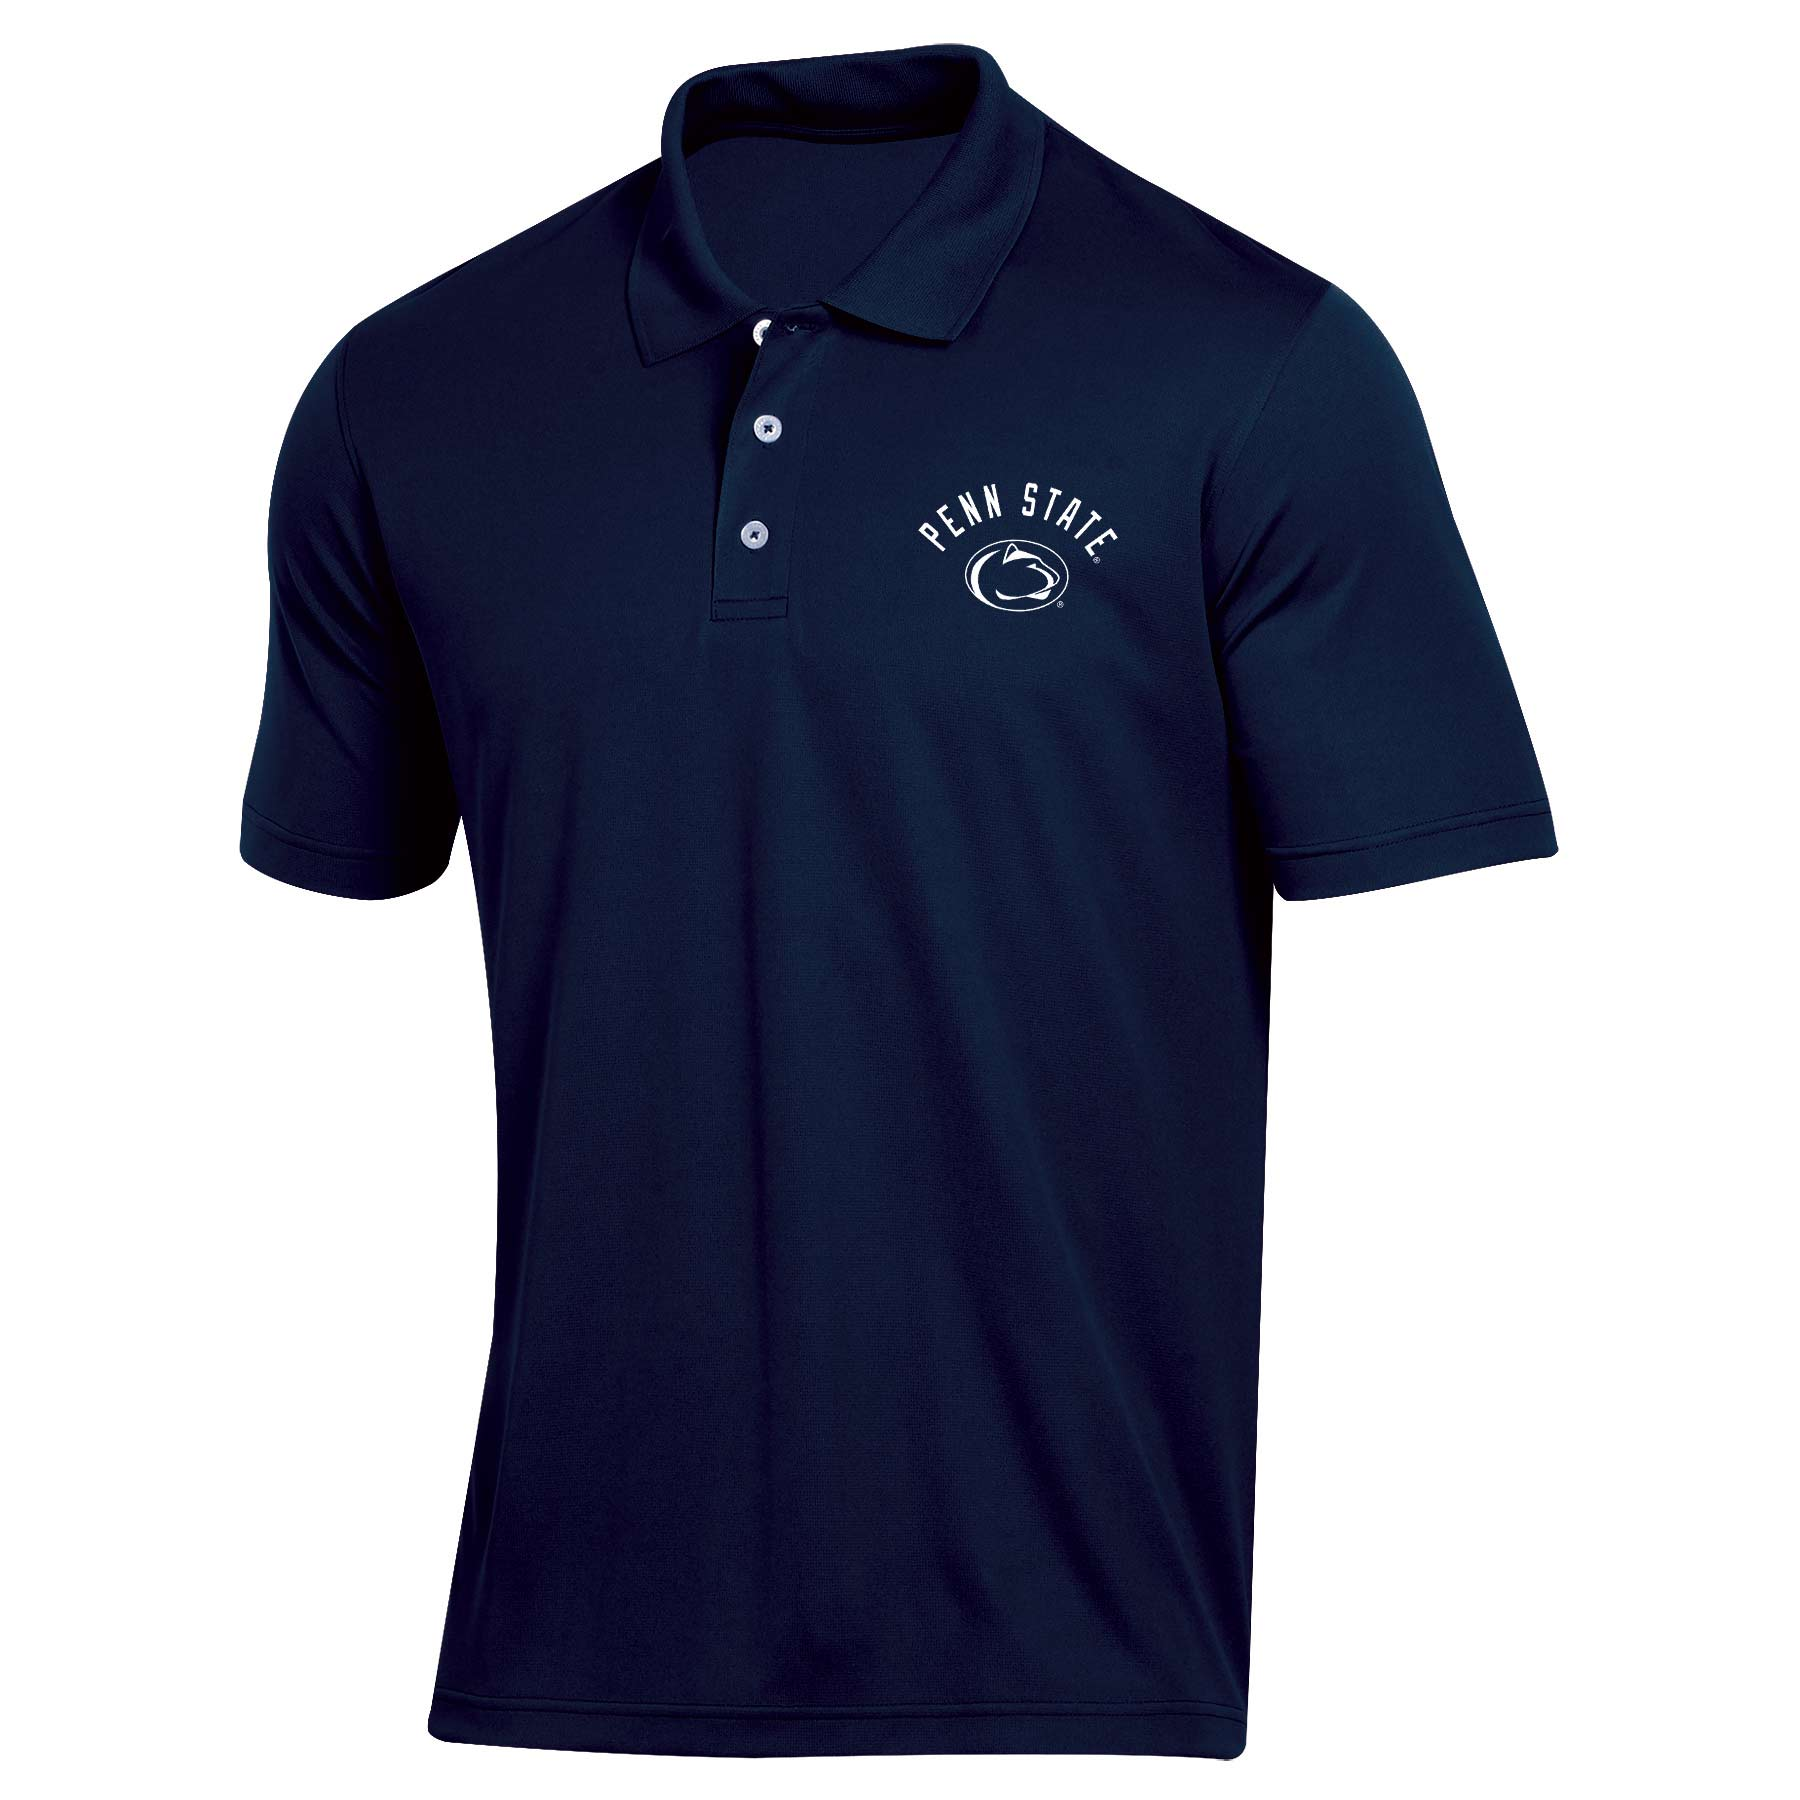 Men's Russell Navy Penn State Nittany Lions Classic Dot Mesh Polo